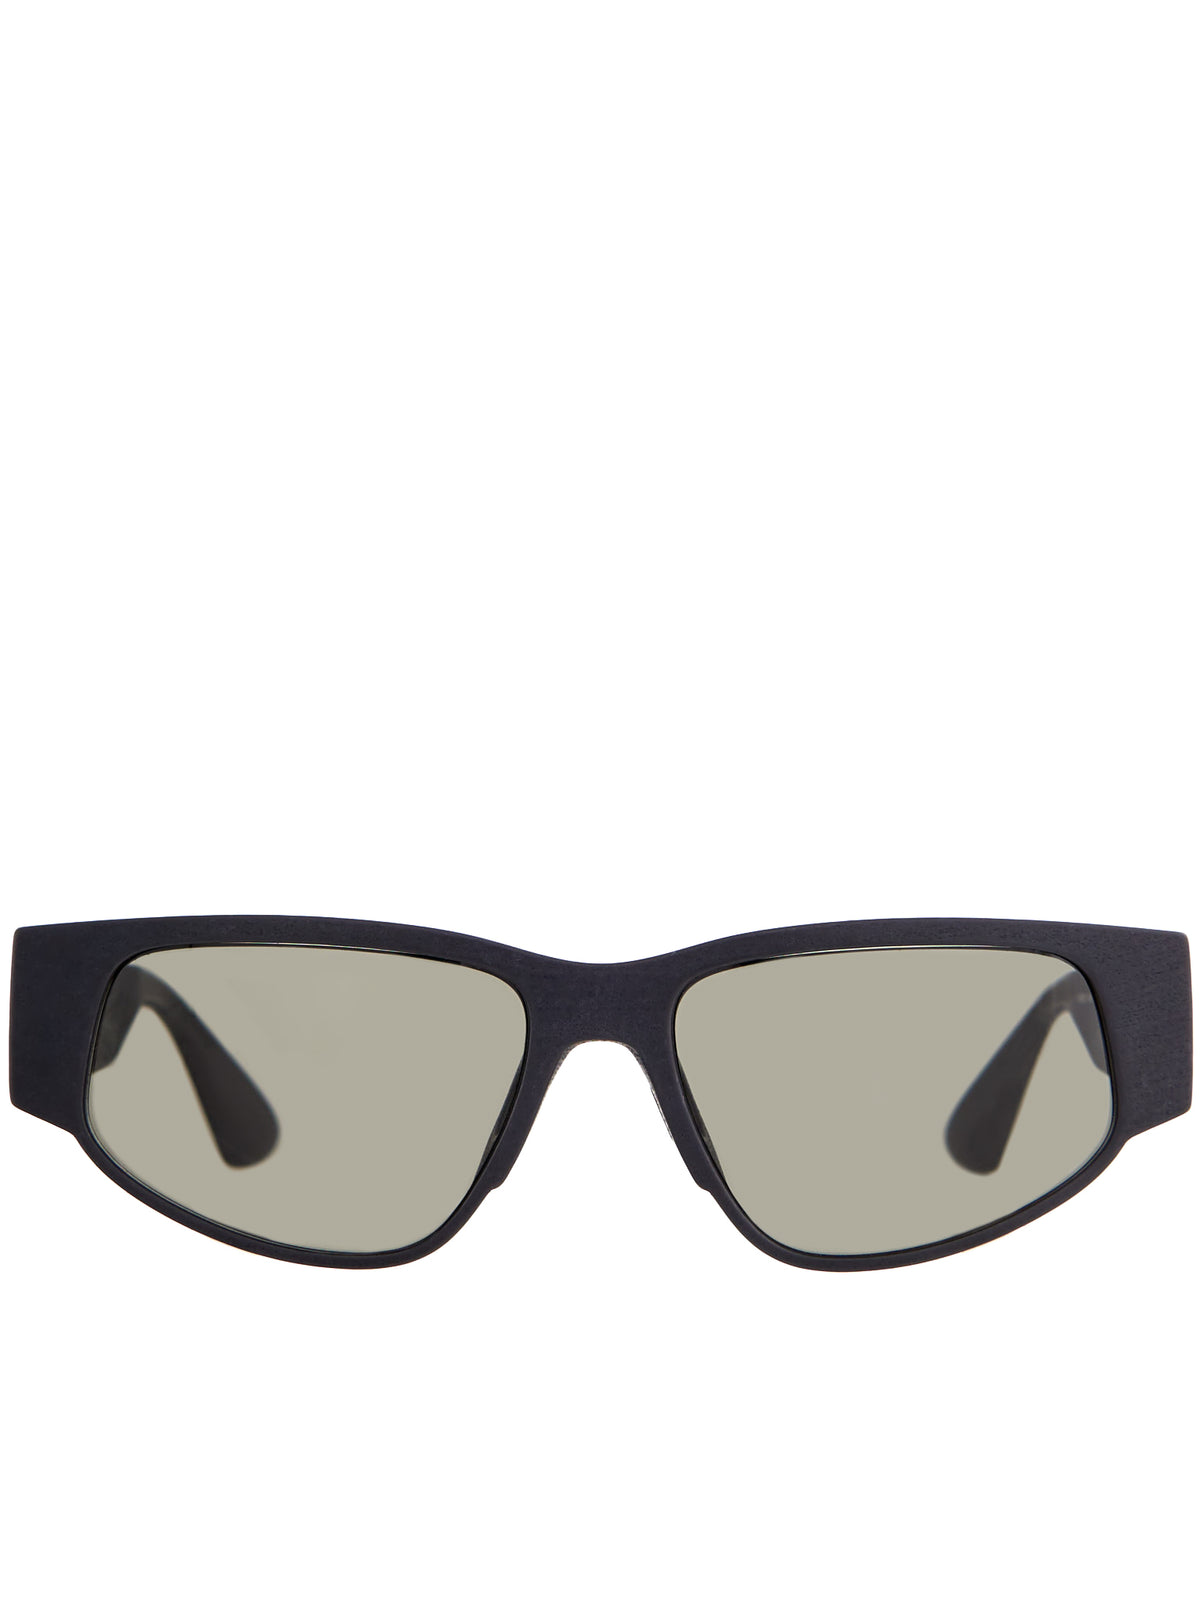 'Cash' Sunglasses (CASH-PITCH-BLACK-GREY-SOLID)